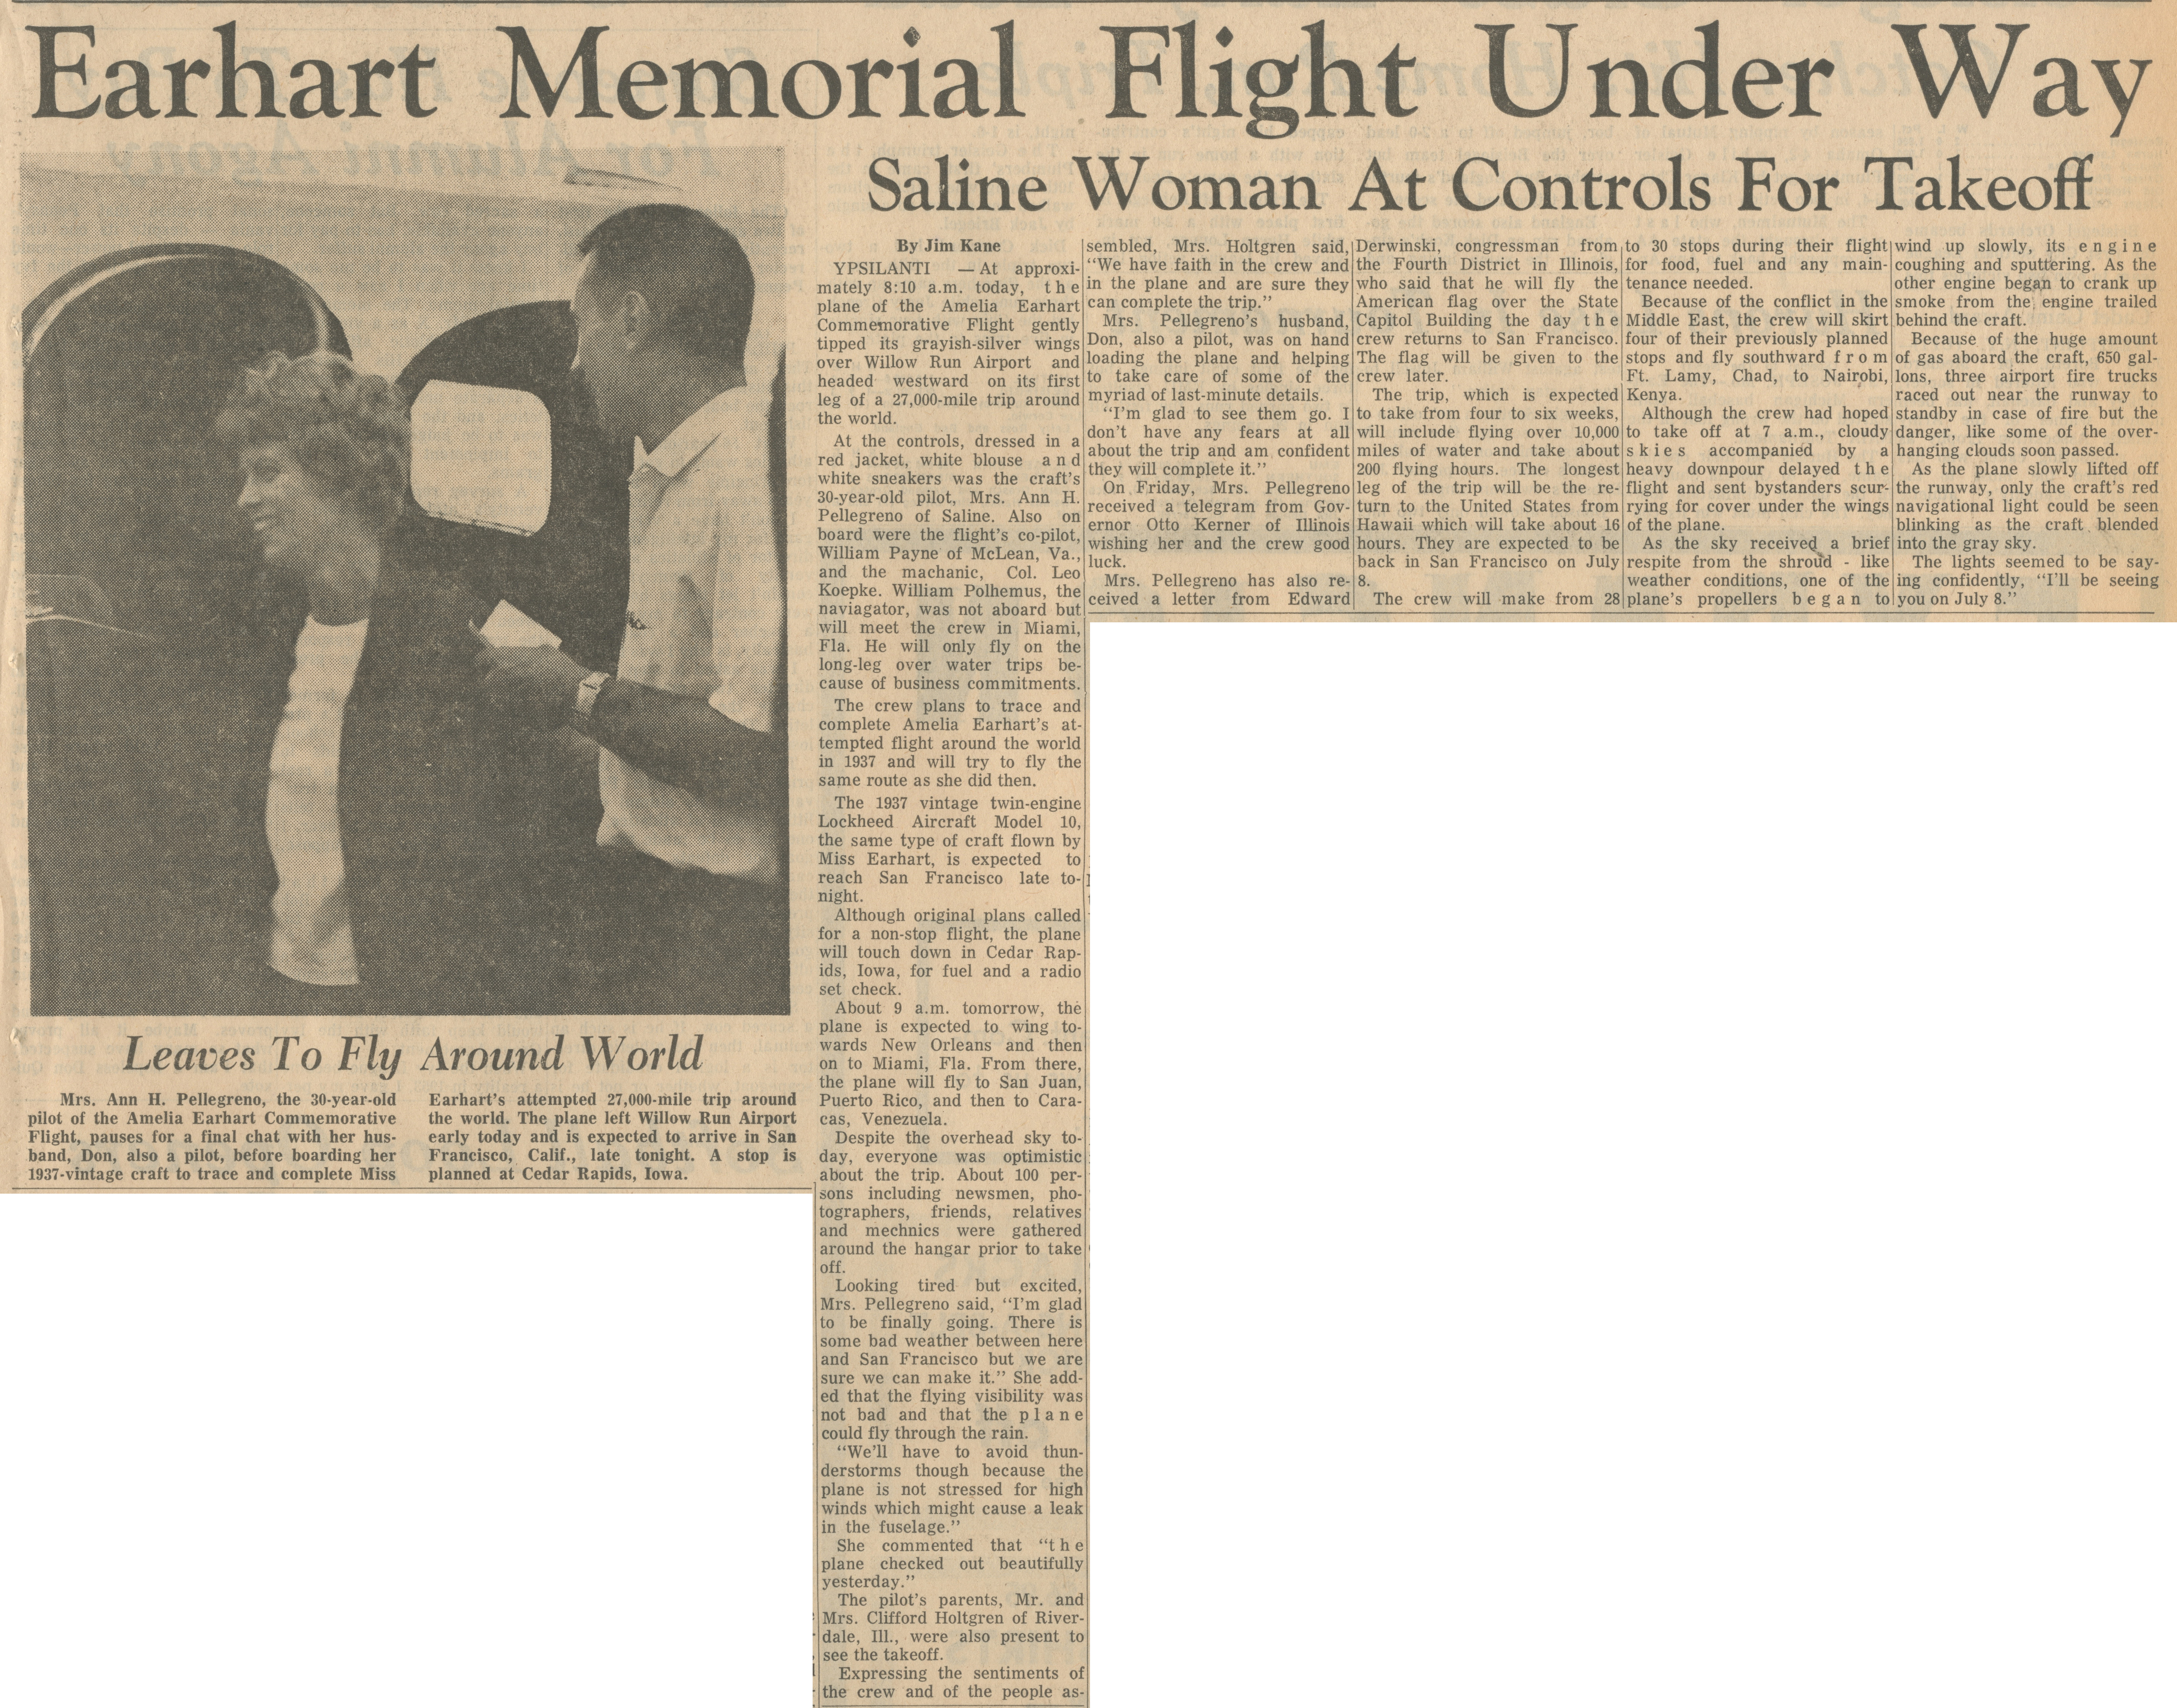 Earhart Memorial Flight Under Way - Saline Woman At Controls For Takeoff image